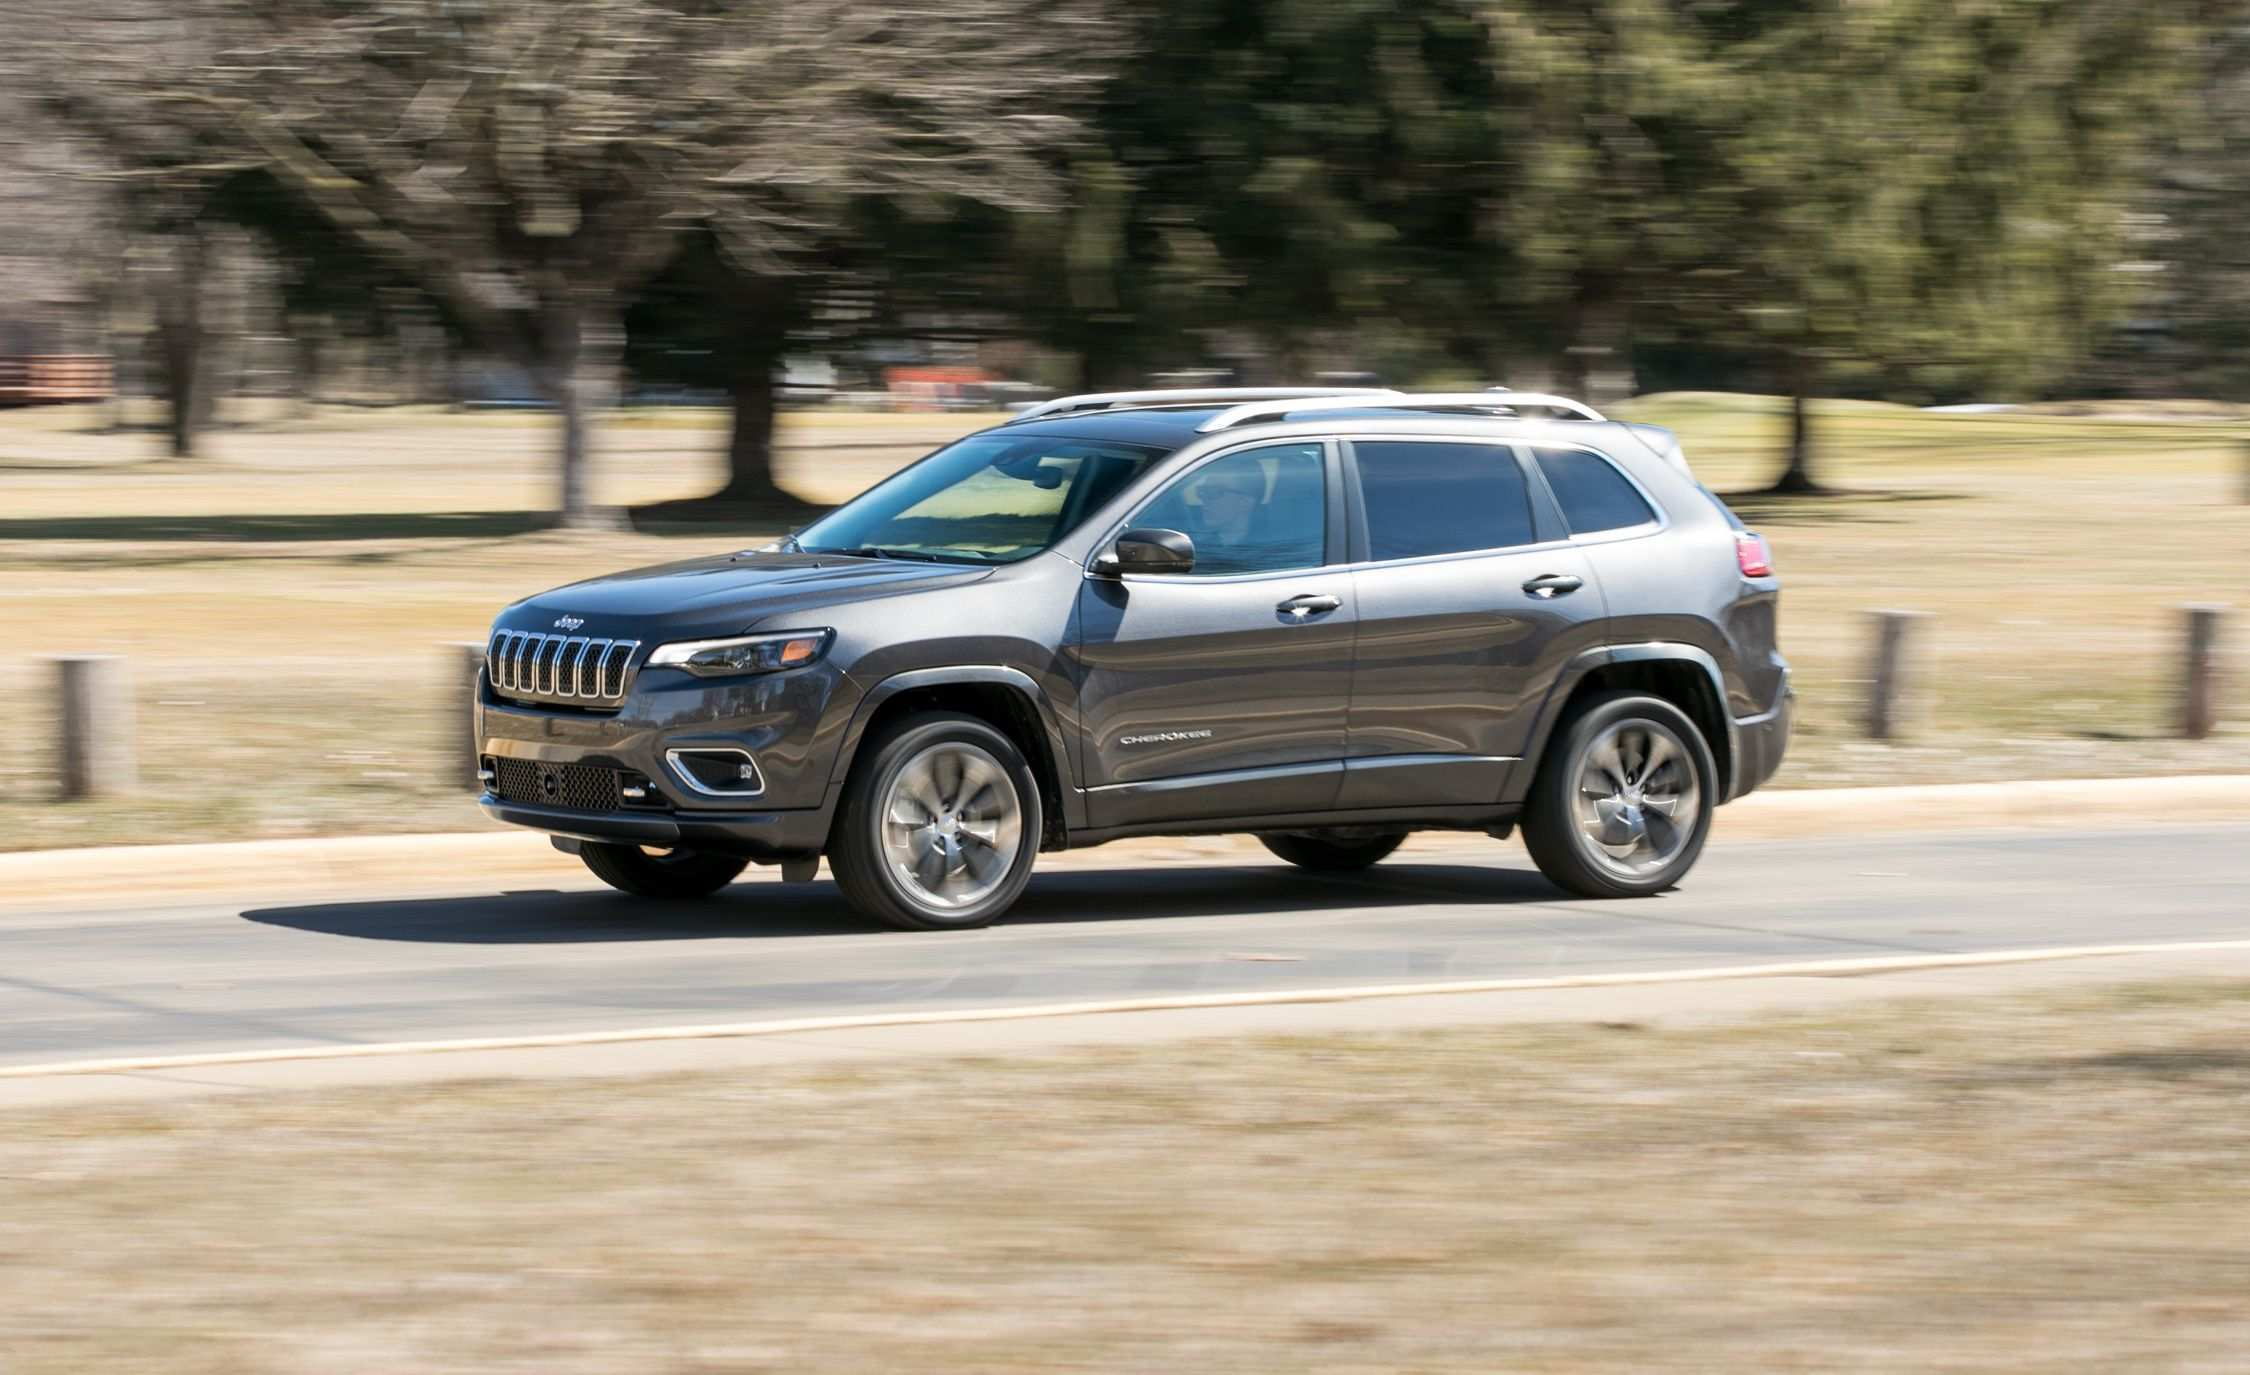 79 Concept of 2019 Jeep 2 0 Turbo Mpg Reviews with 2019 Jeep 2 0 Turbo Mpg